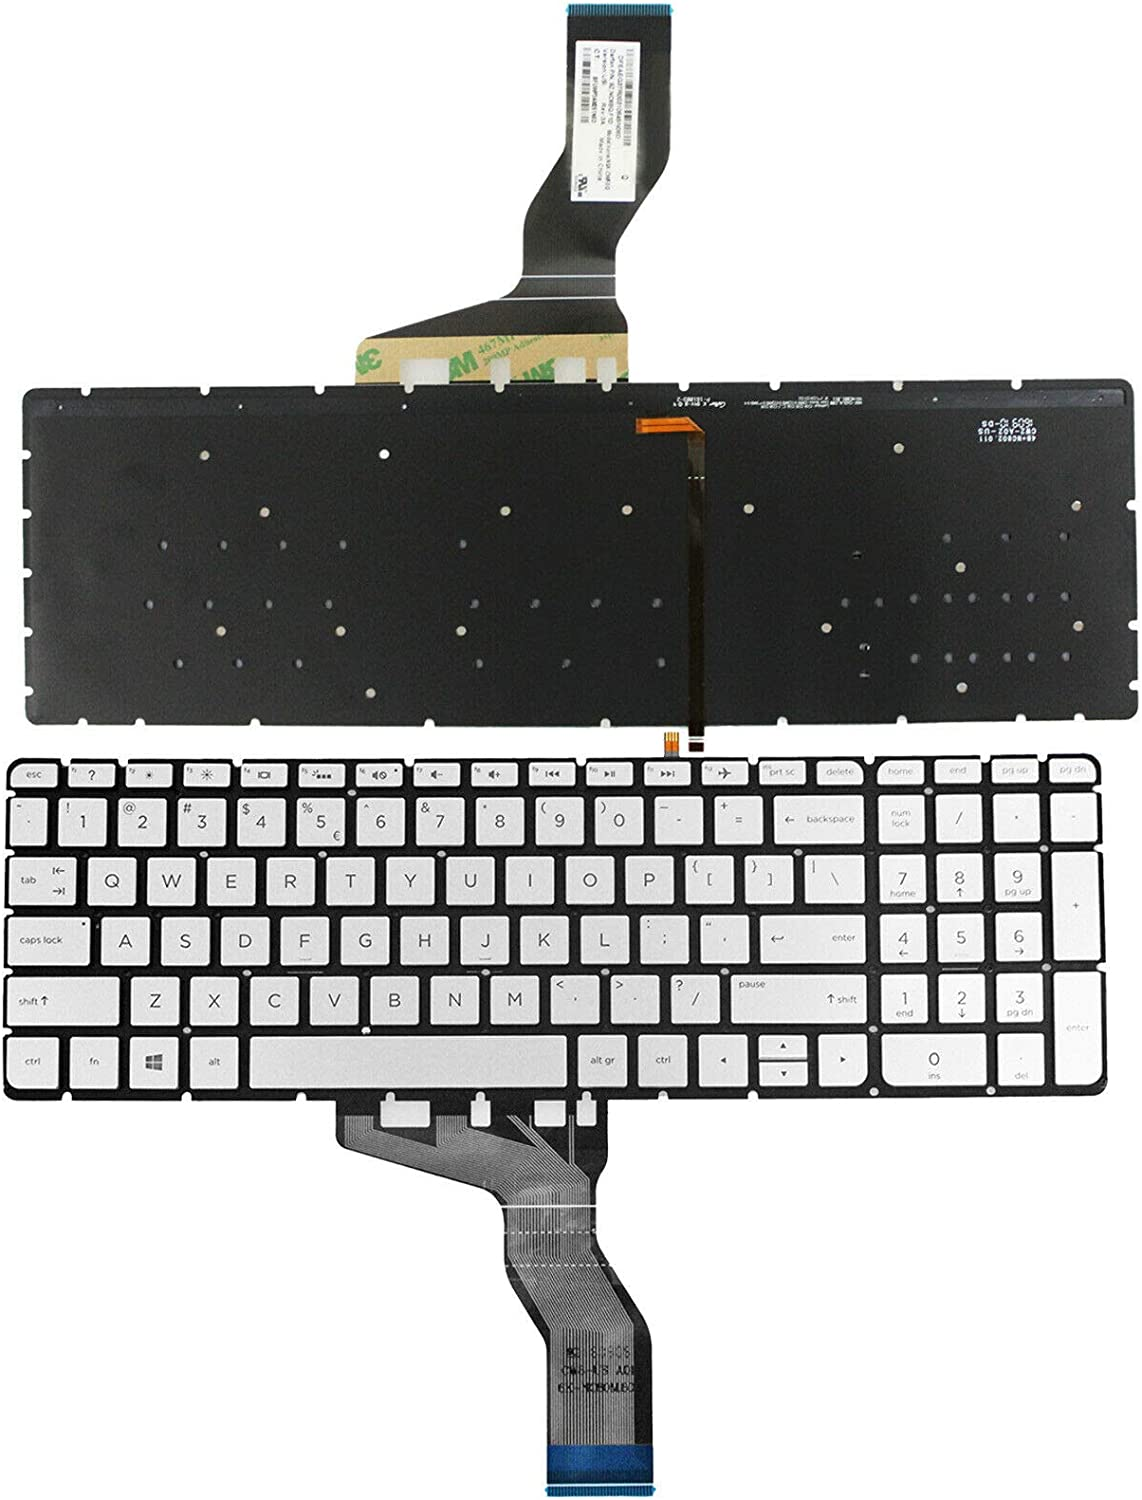 GinTai US Keyboard with Backlit Replacement for HP 15-aw003cy 15-aw004cy 15-aw005cy 15-aw006cy 15-aw078nr 15-aw167cl 15-aw001cy 15-aw002cy 15-aw050ca 15-aw057nr 15-aw060ca 15-aw070ca